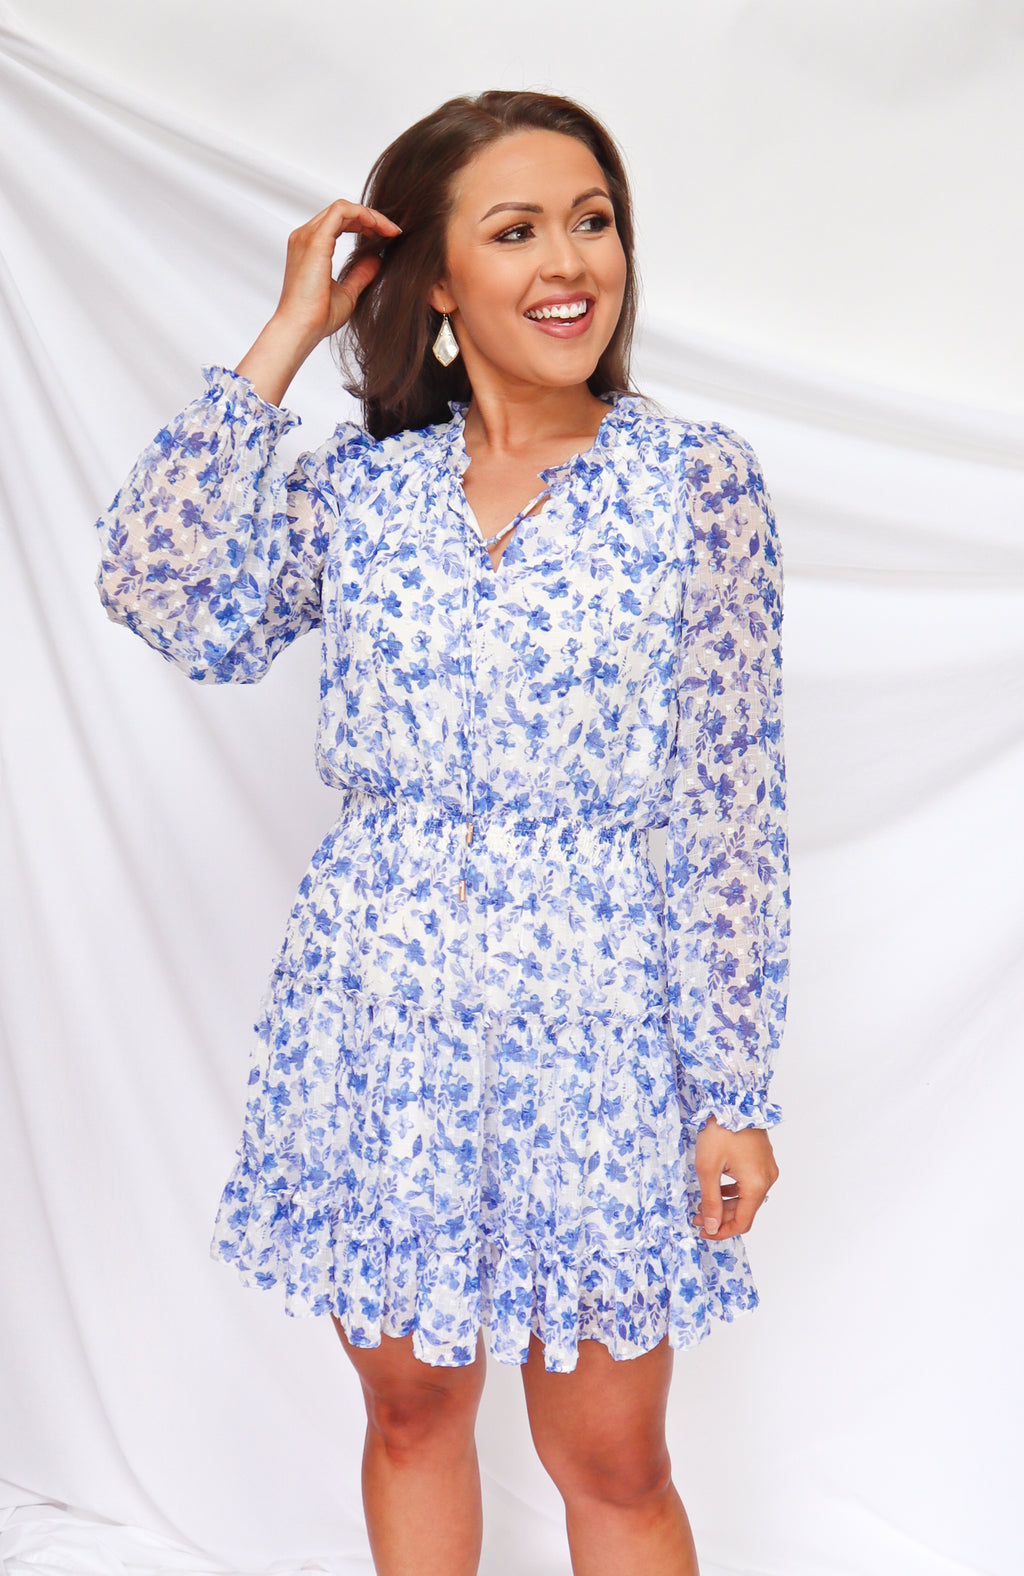 Get In Gorgeous Floral Blue and White Dress